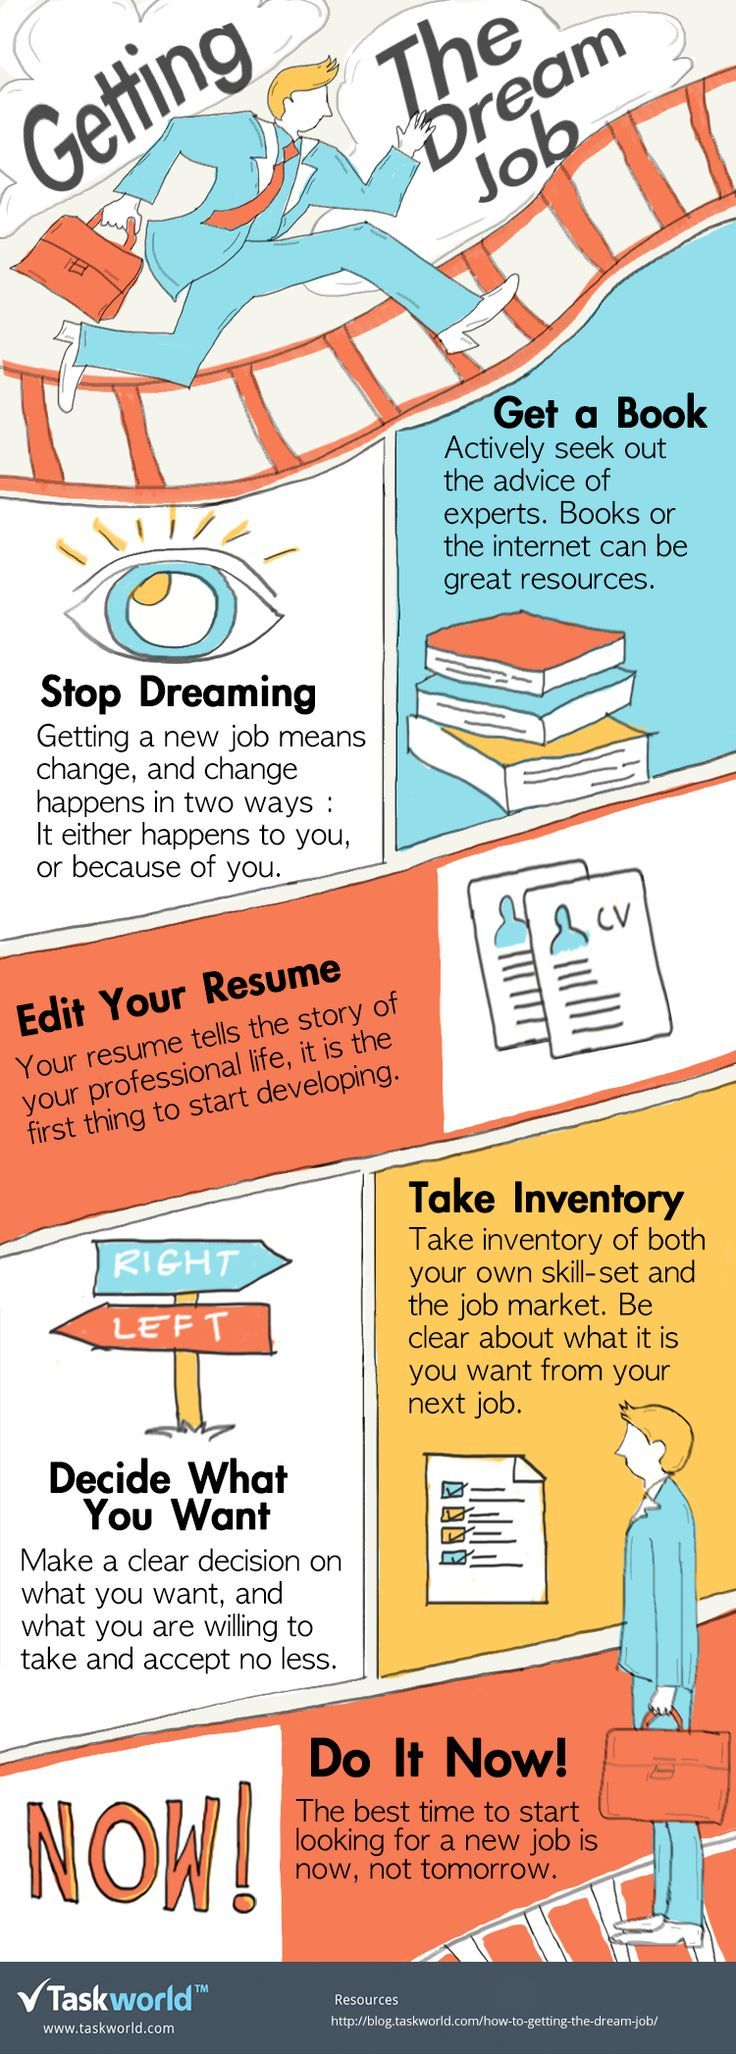 best images about career change employee benefit getting the dream job infographic career changecareer